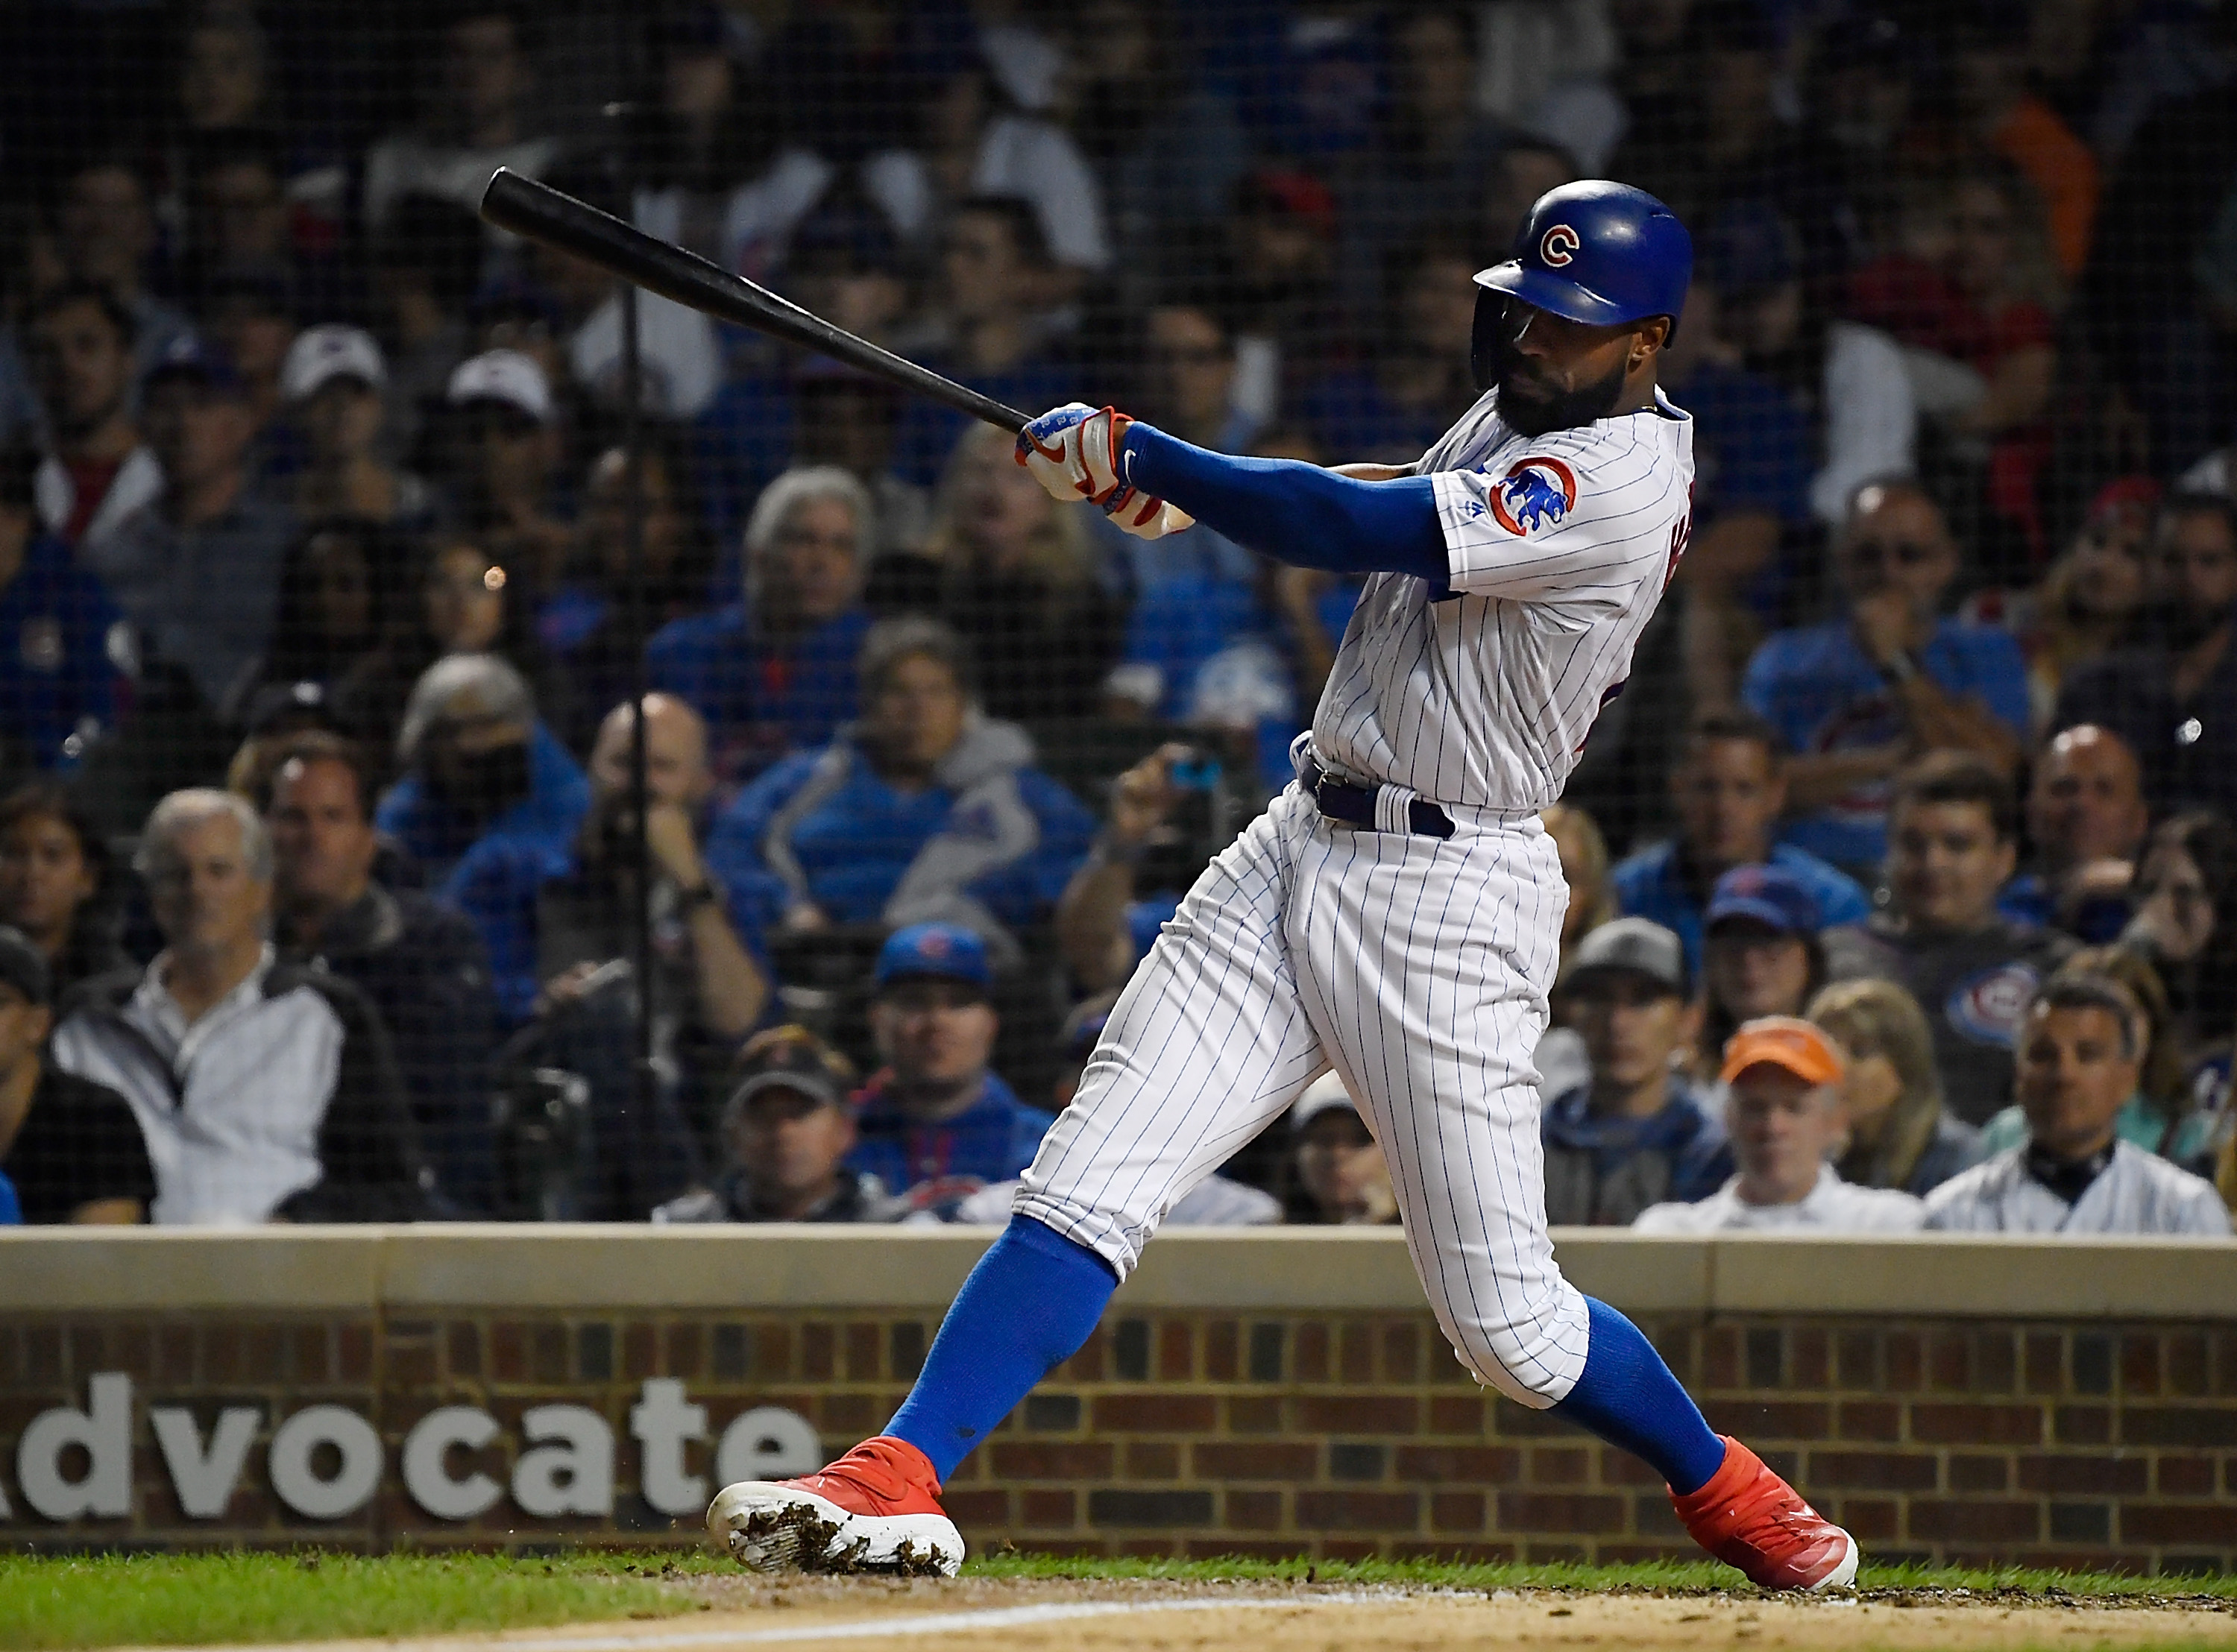 Cubs outfielder Jason Heyward had a .343 on-base percentage overall, but that number fell to .252 in the leadoff spot.